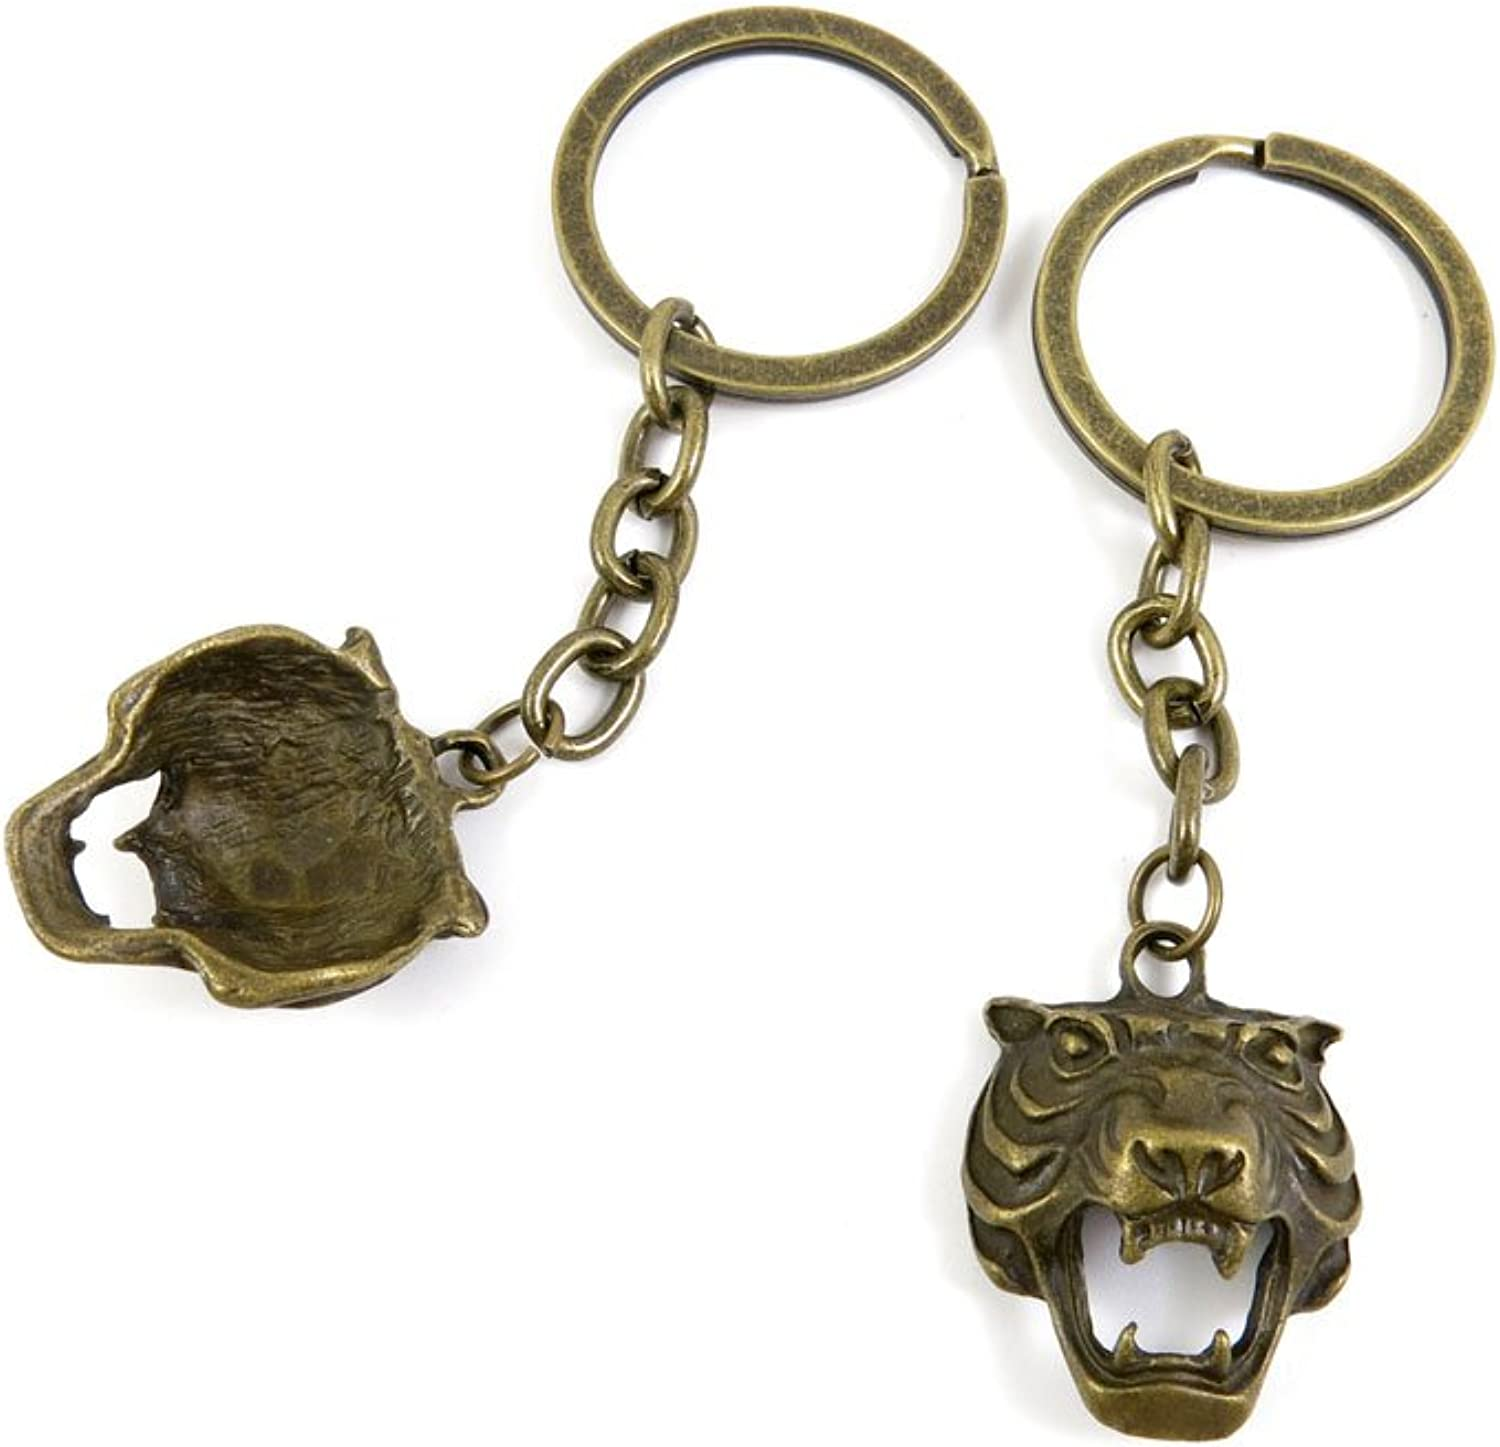 140 Pieces Fashion Jewelry Keyring Keychain Door Car Key Tag Ring Chain Supplier Supply Wholesale Bulk Lots H6TX8 Leopard Head